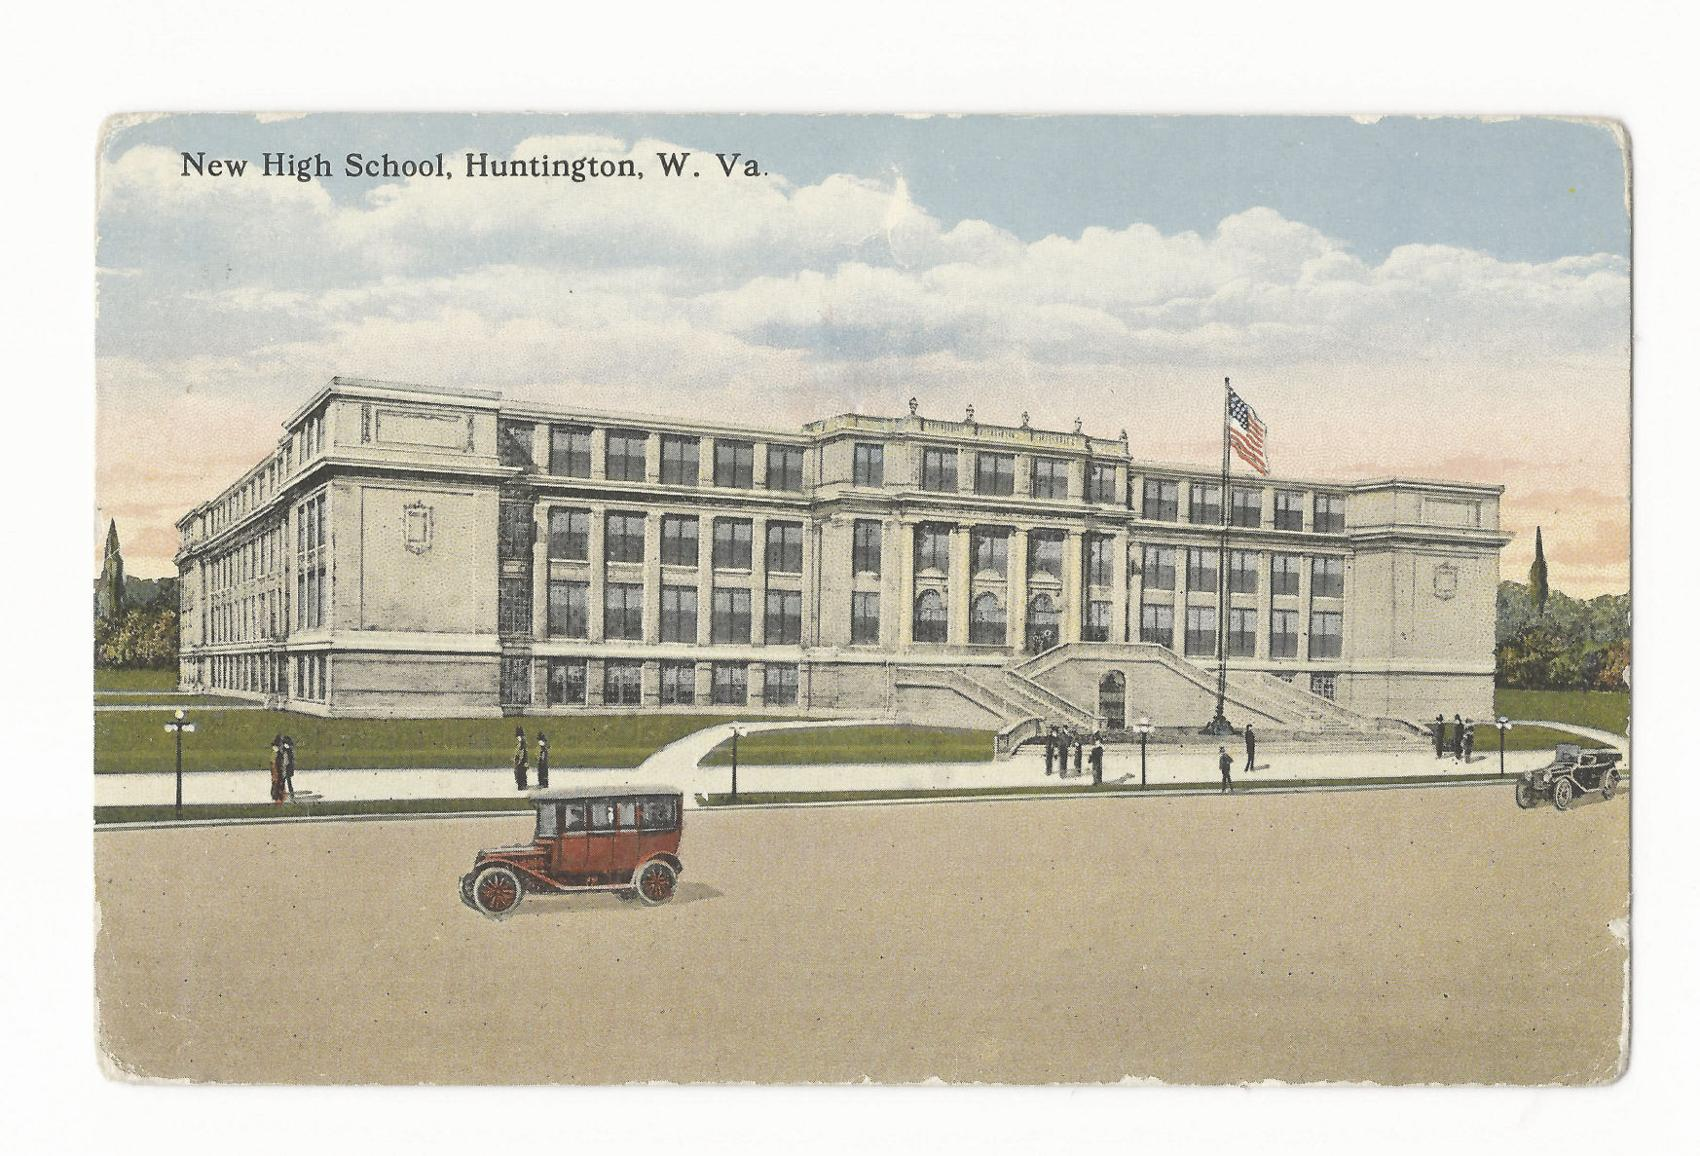 Postcard of Huntington High School, shortly after it opened in 1916